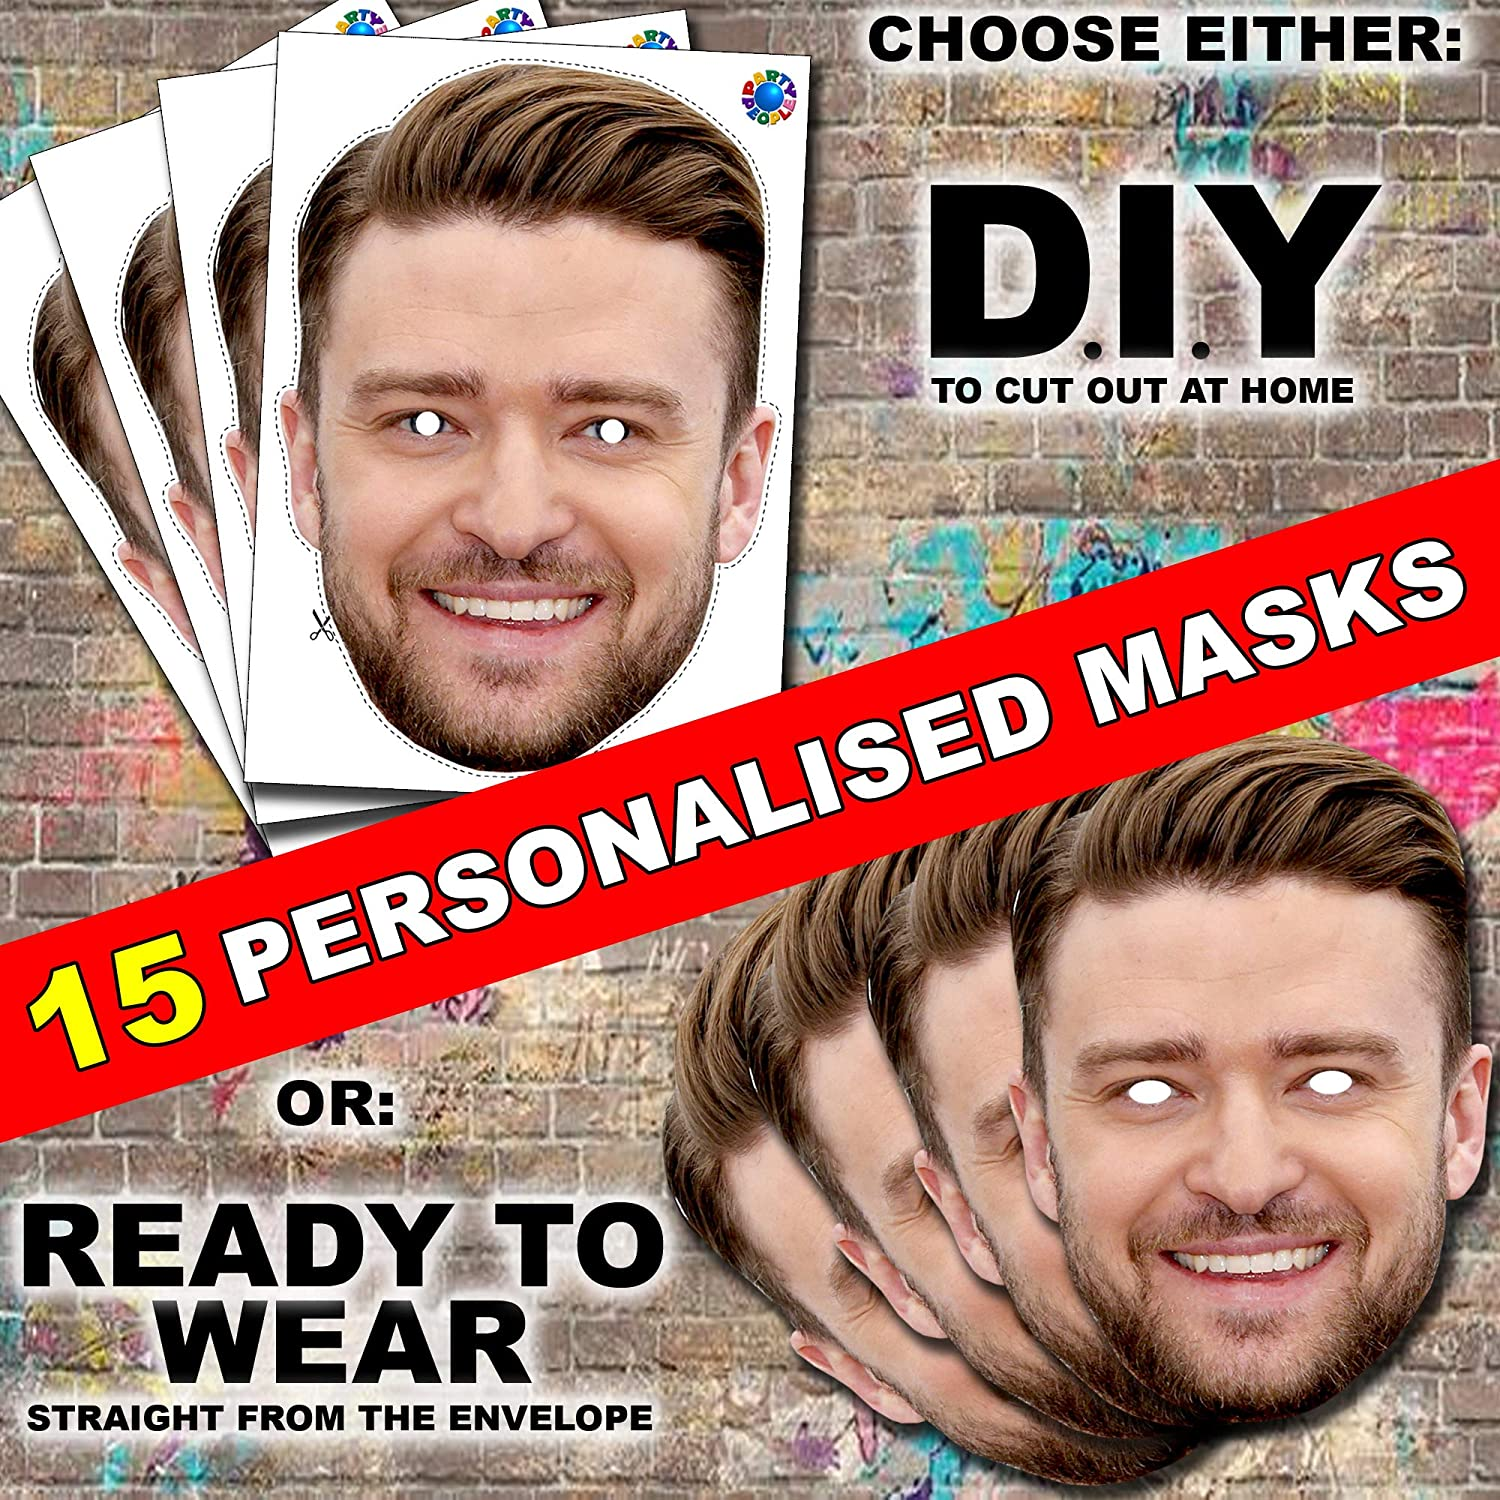 27 x PERSONALISED PHOTO FACE MASKS KITS FOR STAG /& HEN NIGHT AND BIRTHDAY PARTY